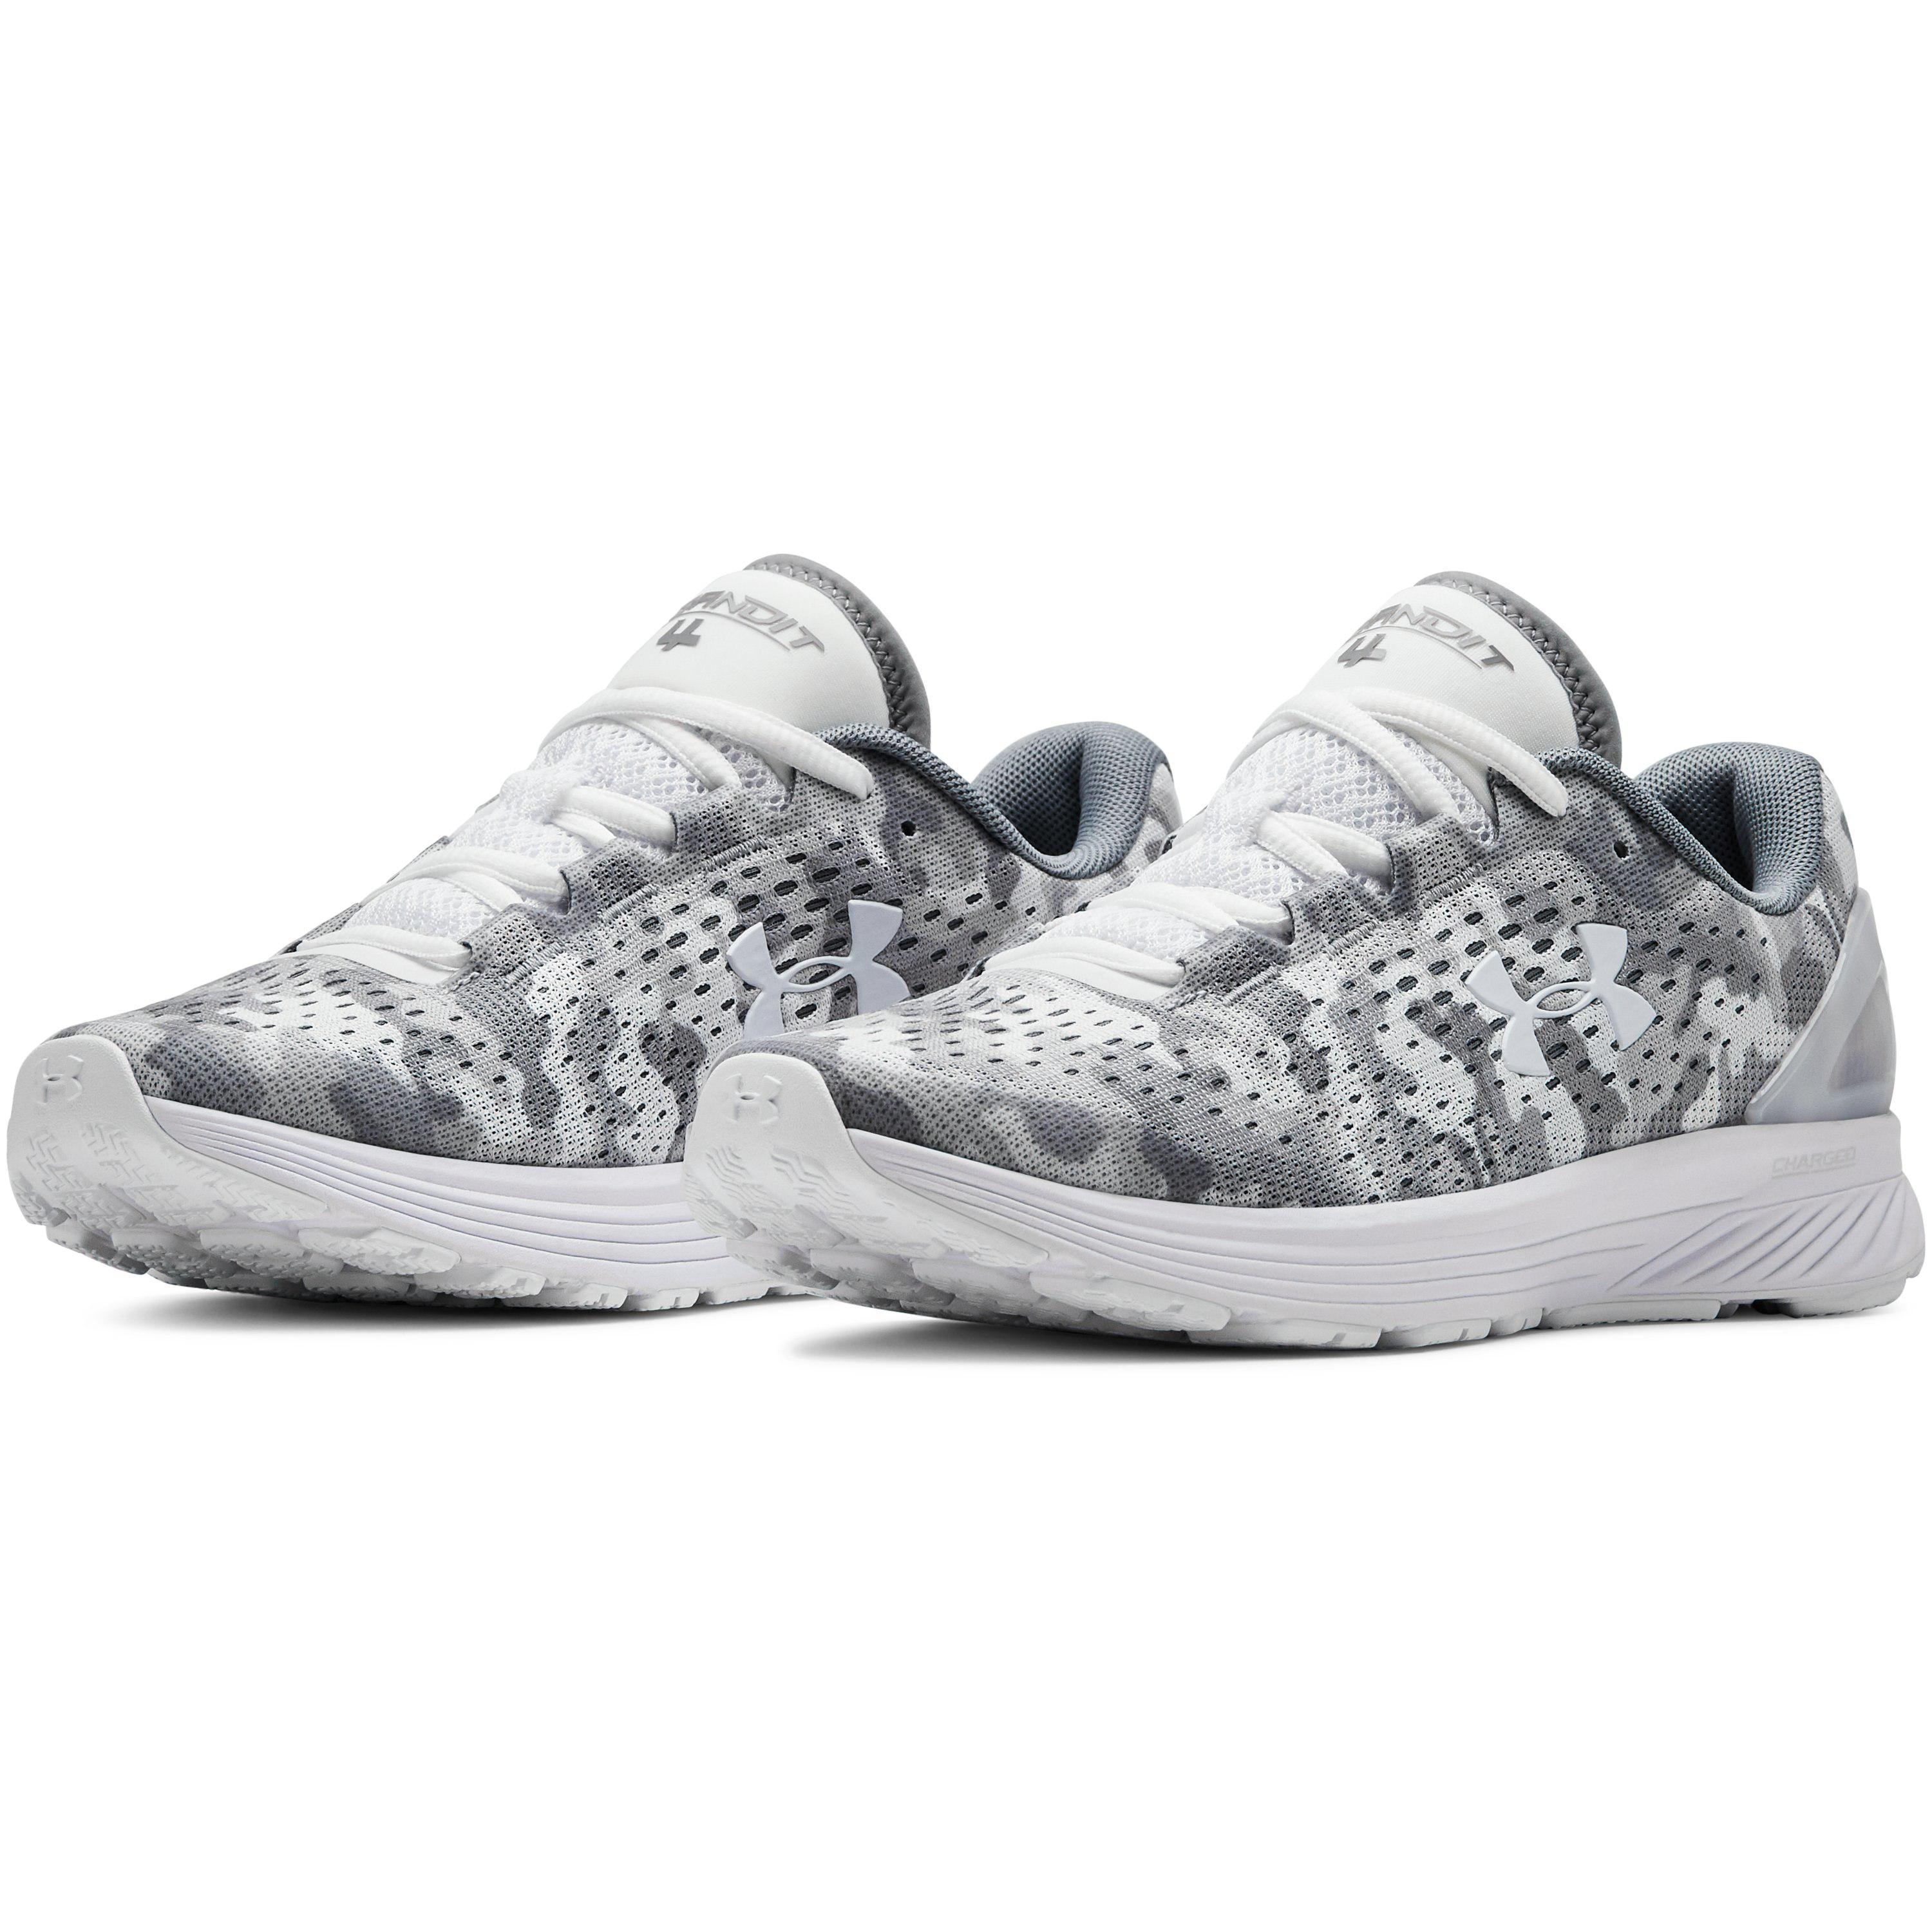 quality design 4d558 3d599 White Women's Ua Charged Bandit 4 Graphic Running Shoes